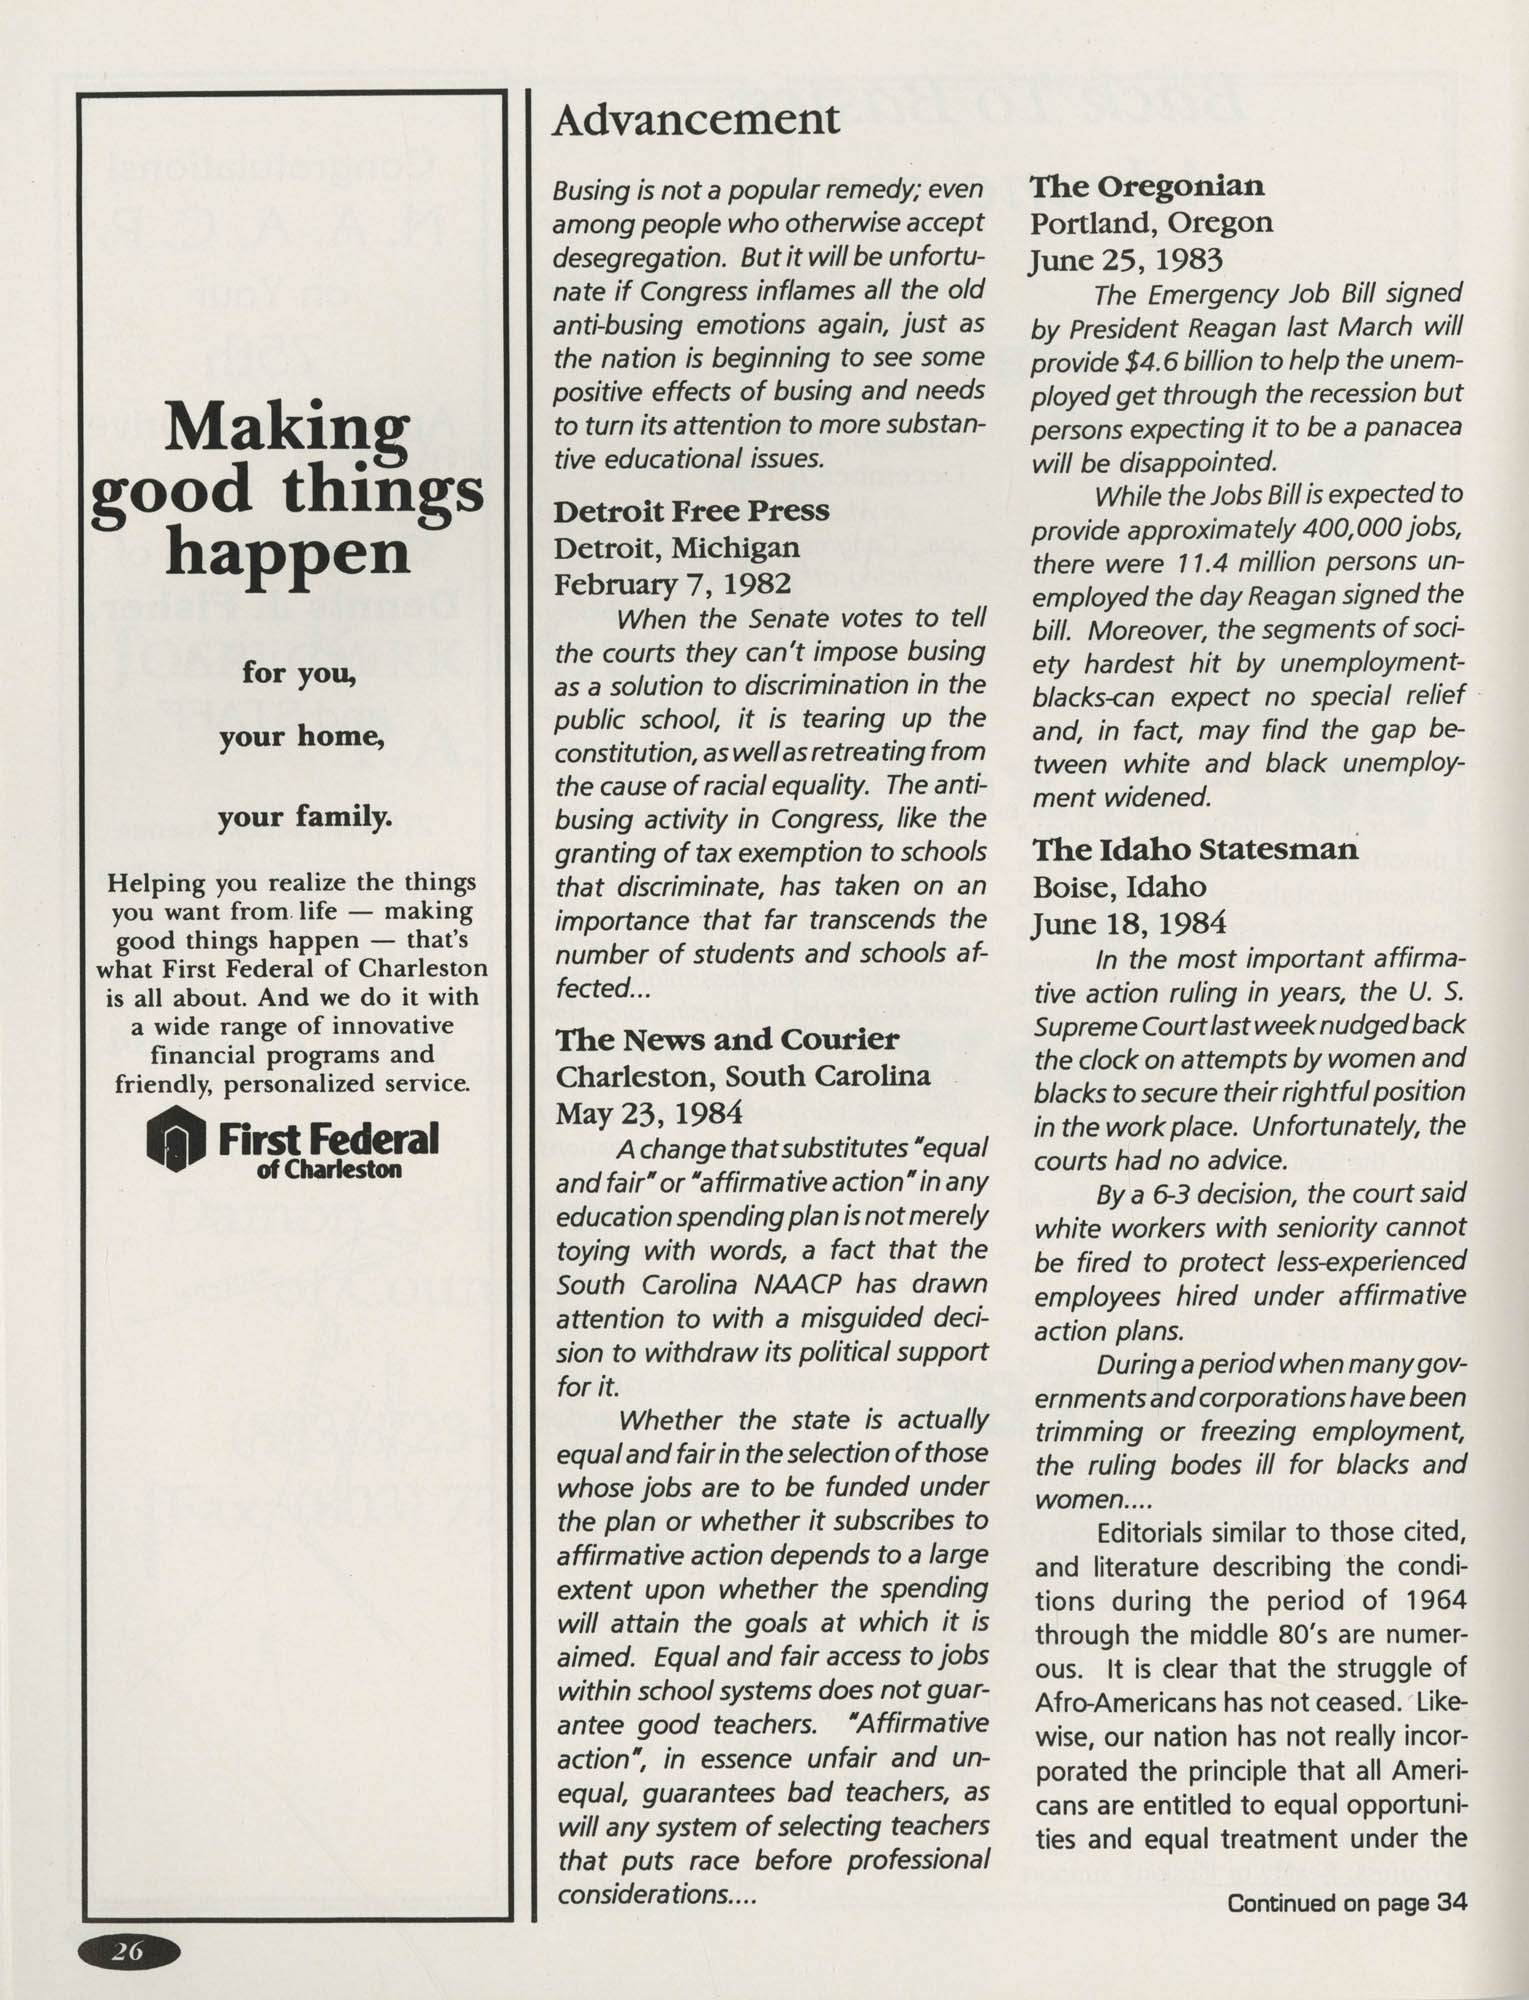 1991 Freedom Fund Magazine, Charleston Branch of the NAACP, Page 26